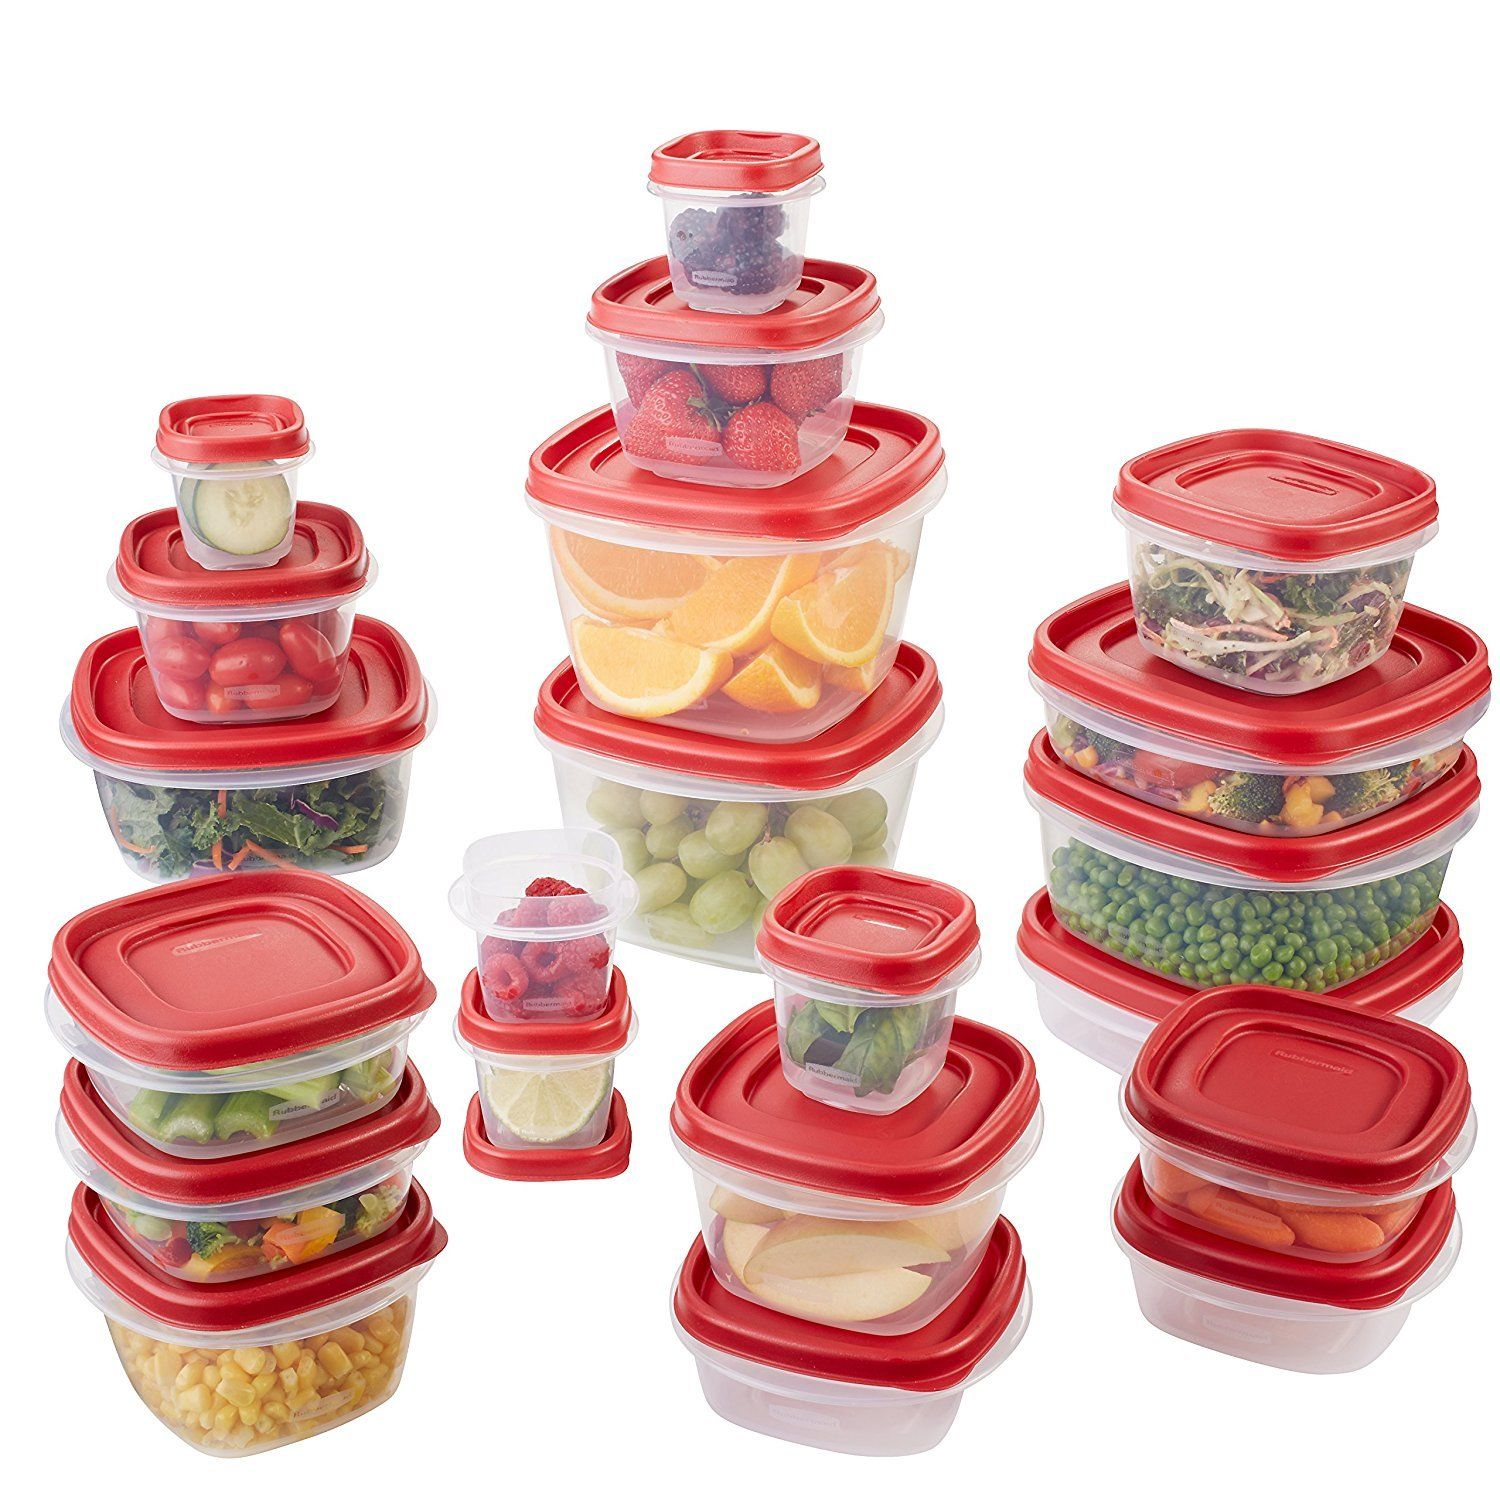 Rubbermaid Easy Find Lids Food Storage Container, 42-Piece Set, Red 1